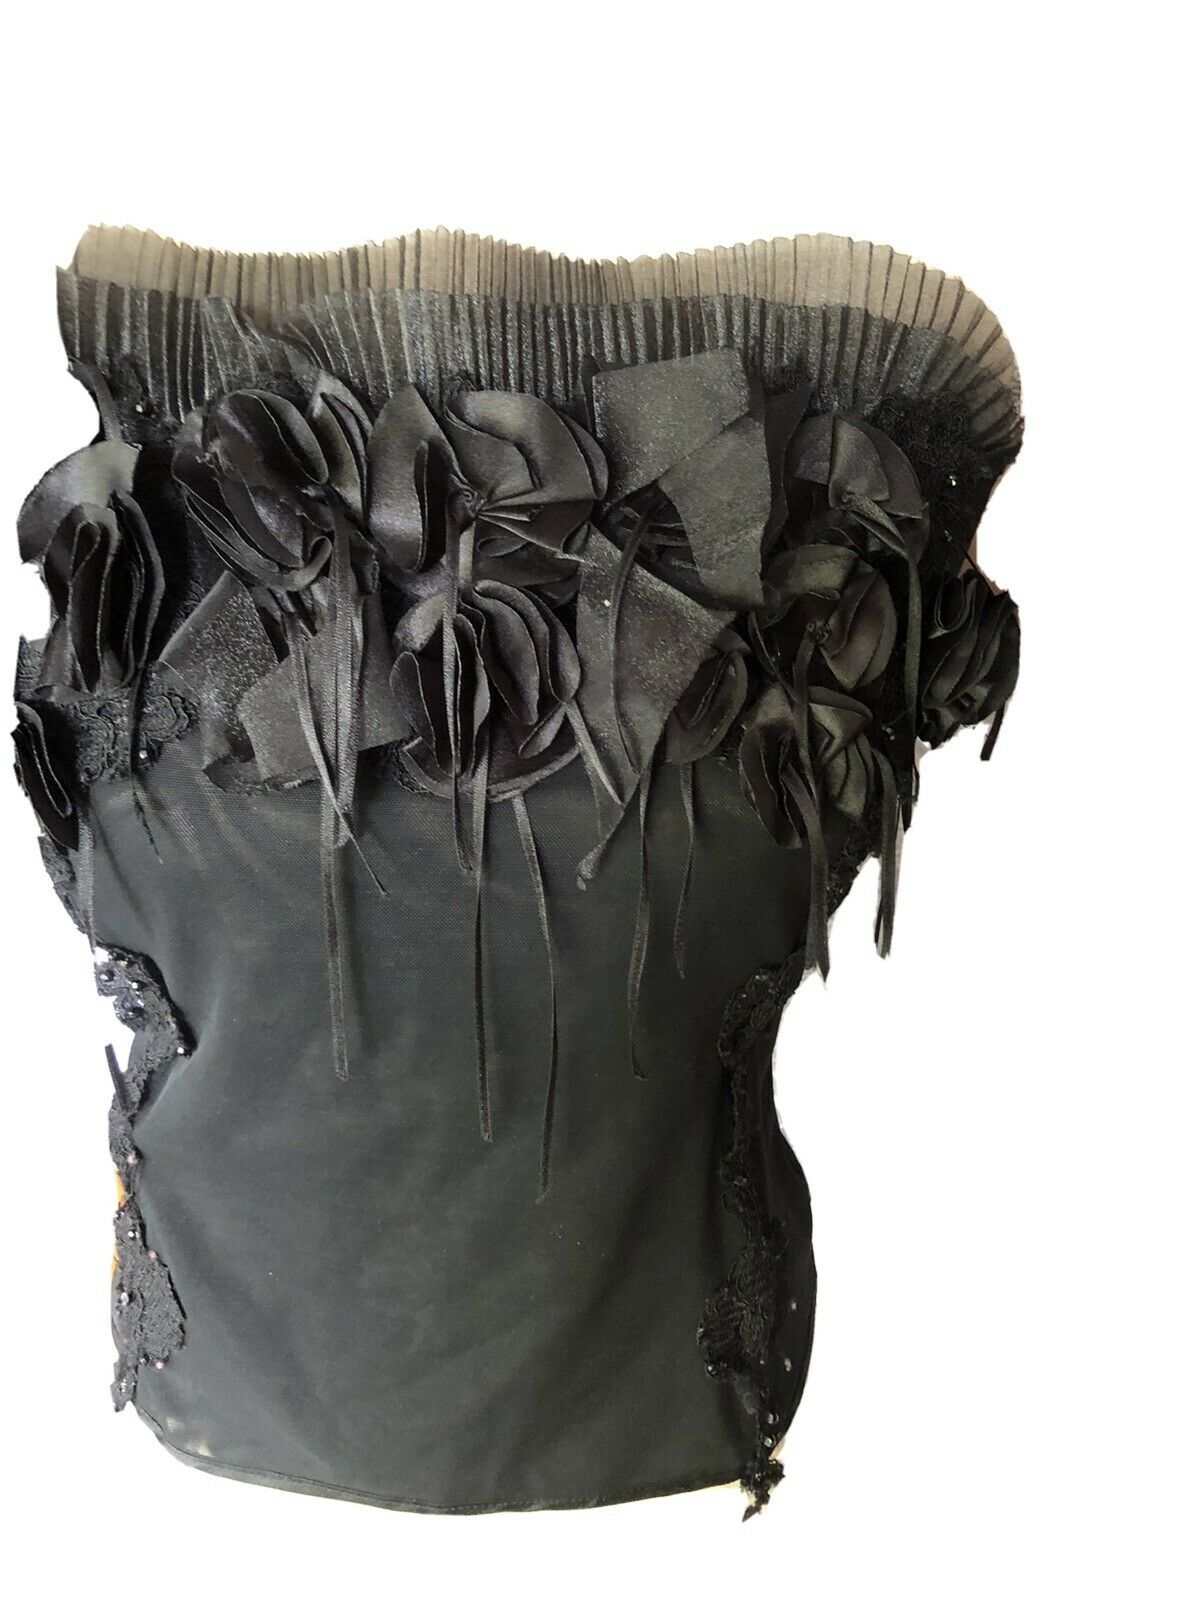 Sexy Black Lace Bustier Corset Top - image 1